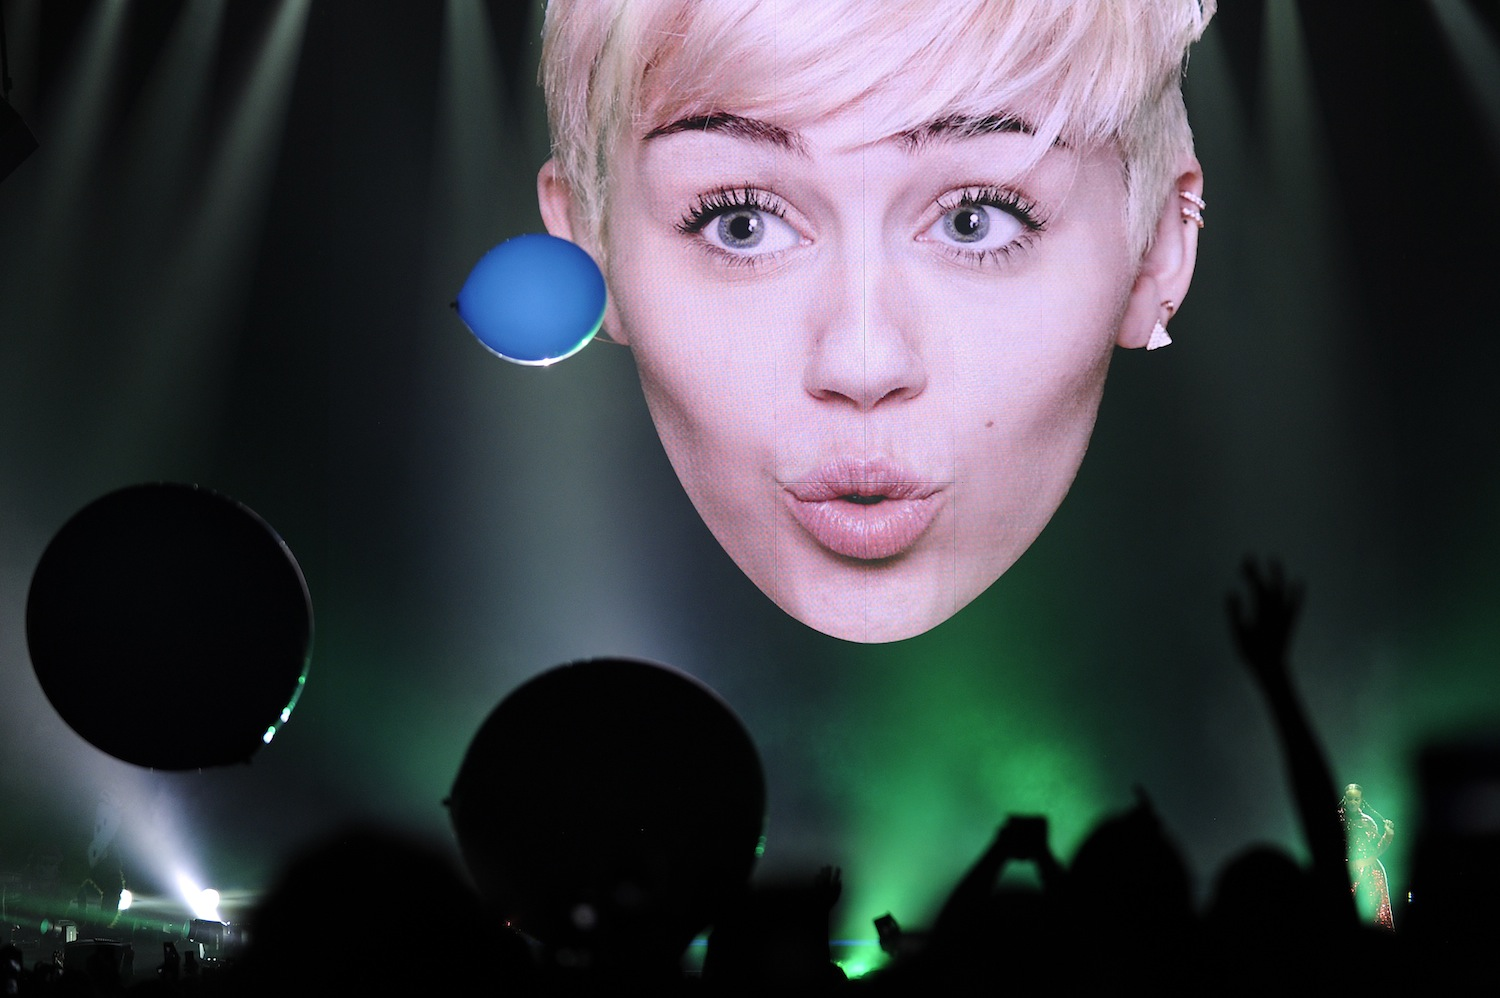 Miley Cyrus performs in Denver during a stop on her Bangerz Tour on Mar. 4, 2014